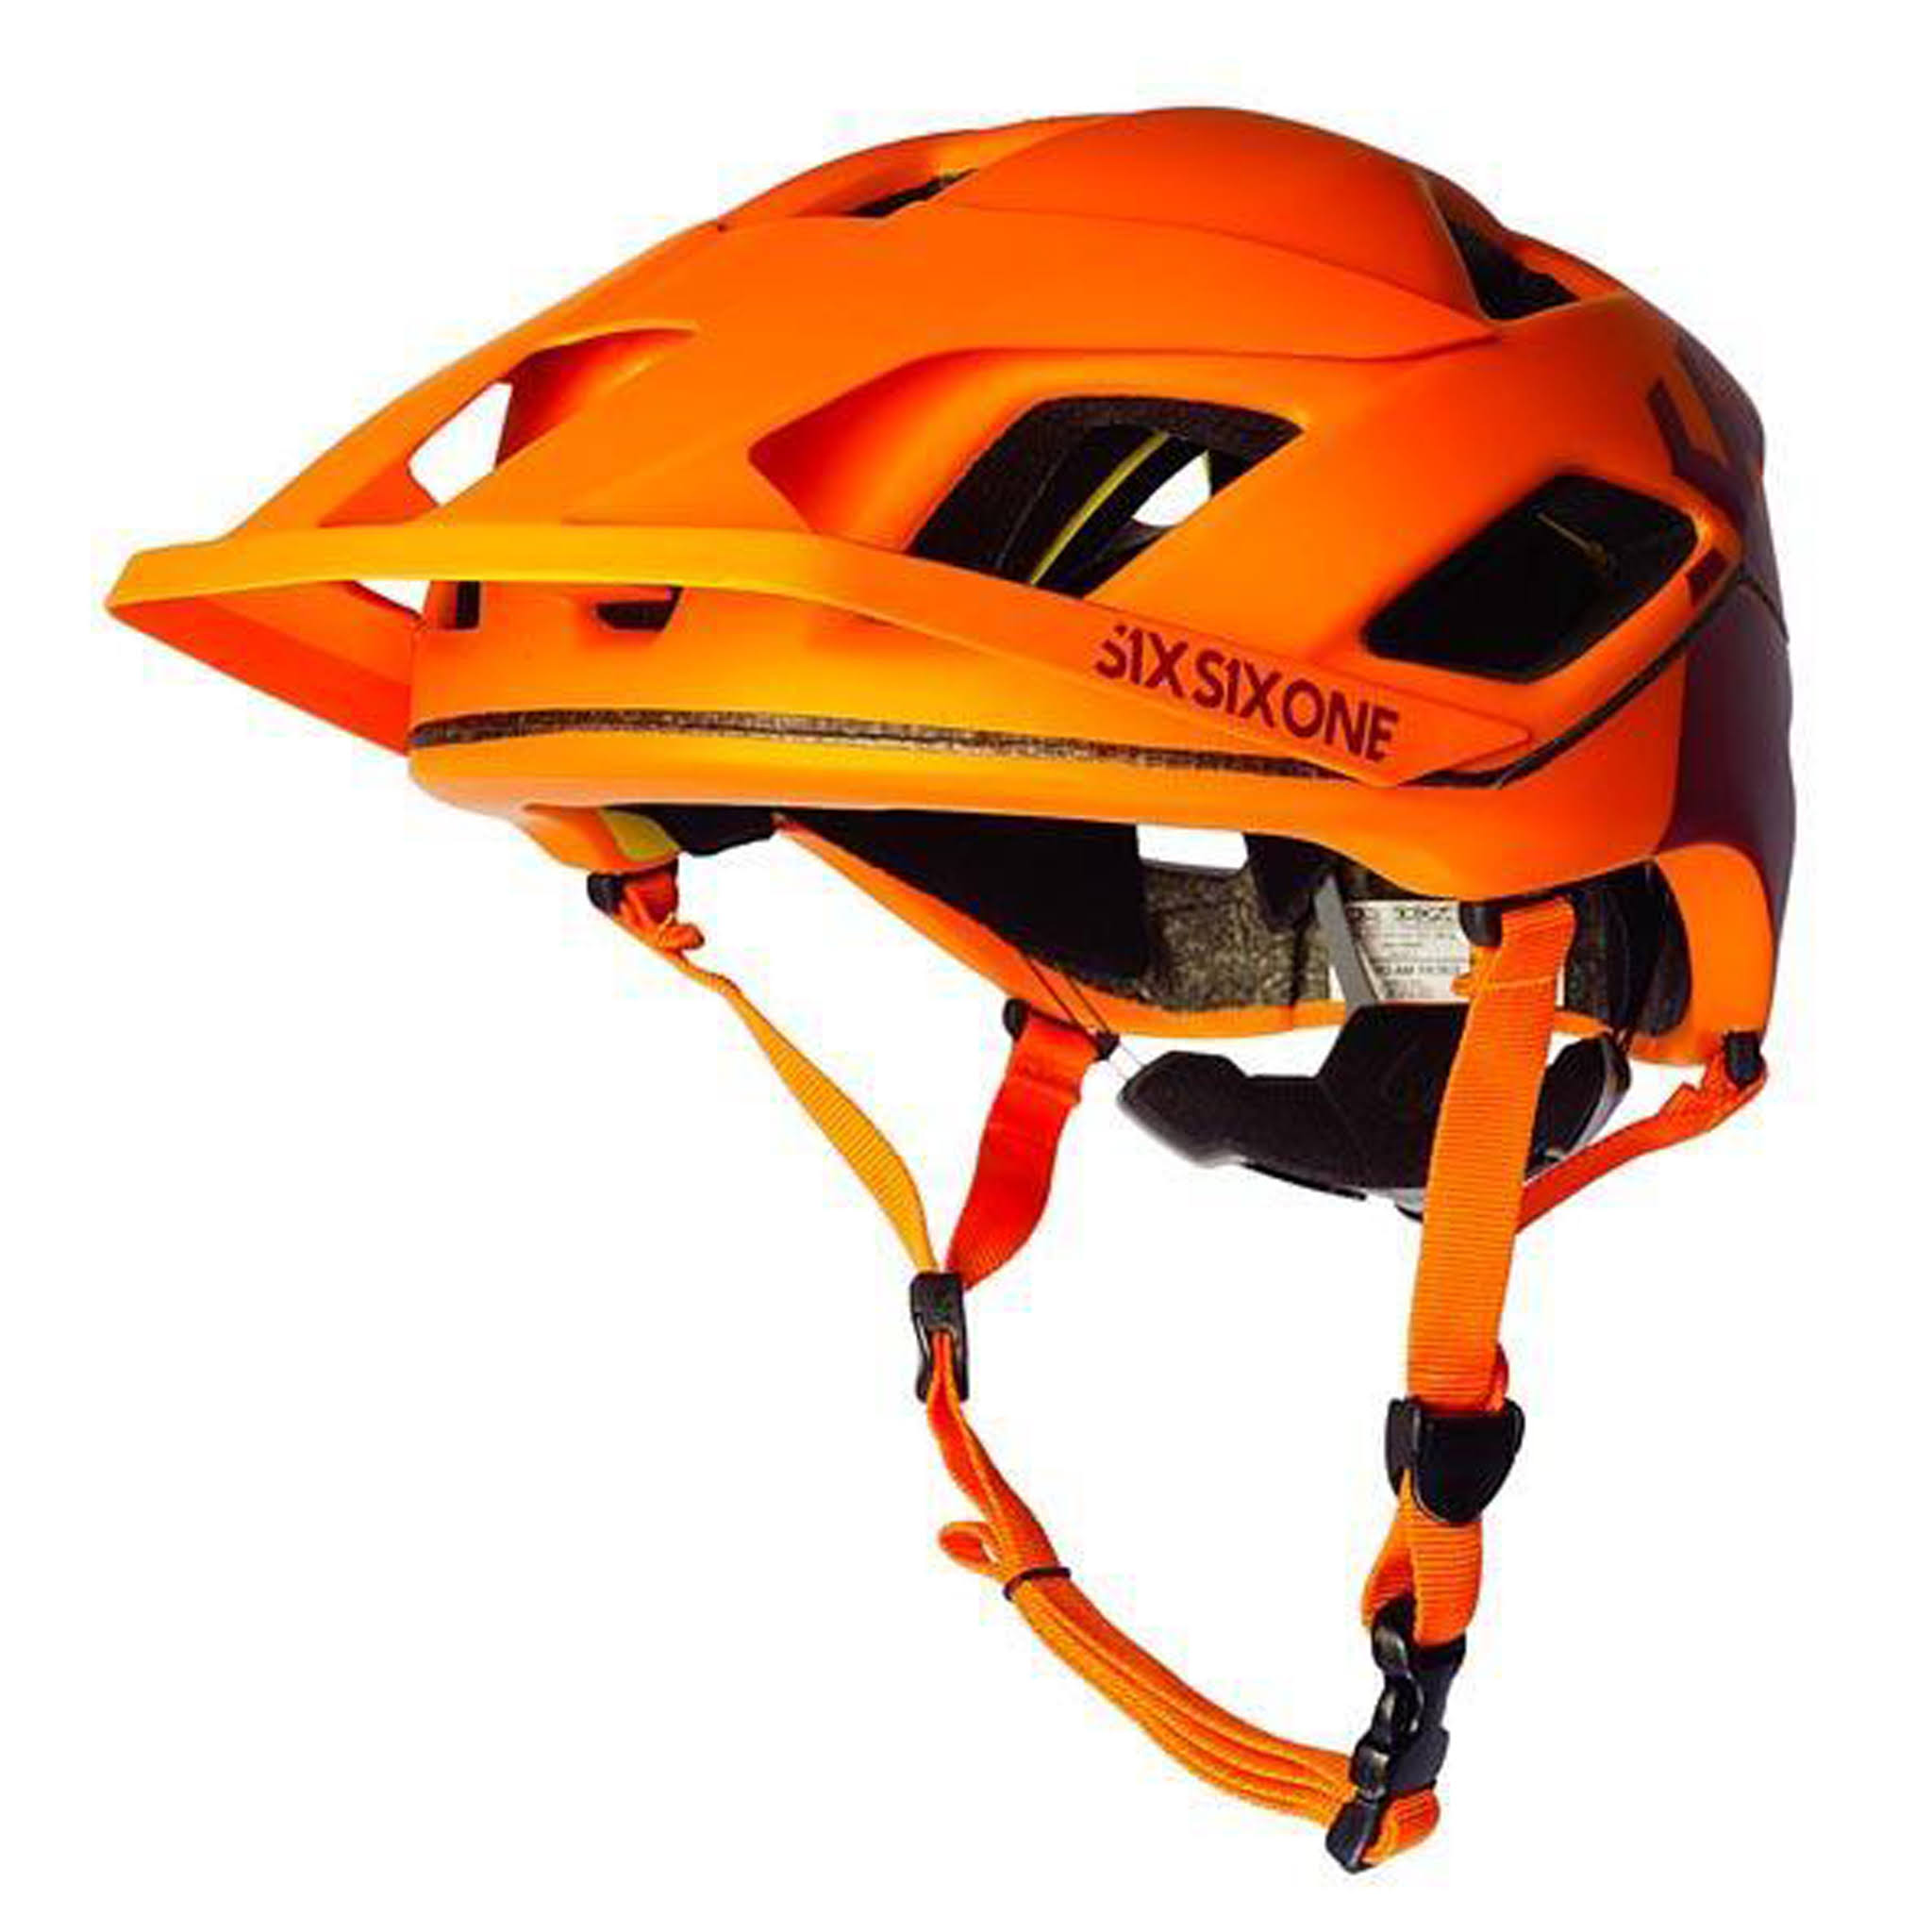 SixSixOne Evo Am Patrol MIPS Helmet Orange - M/L